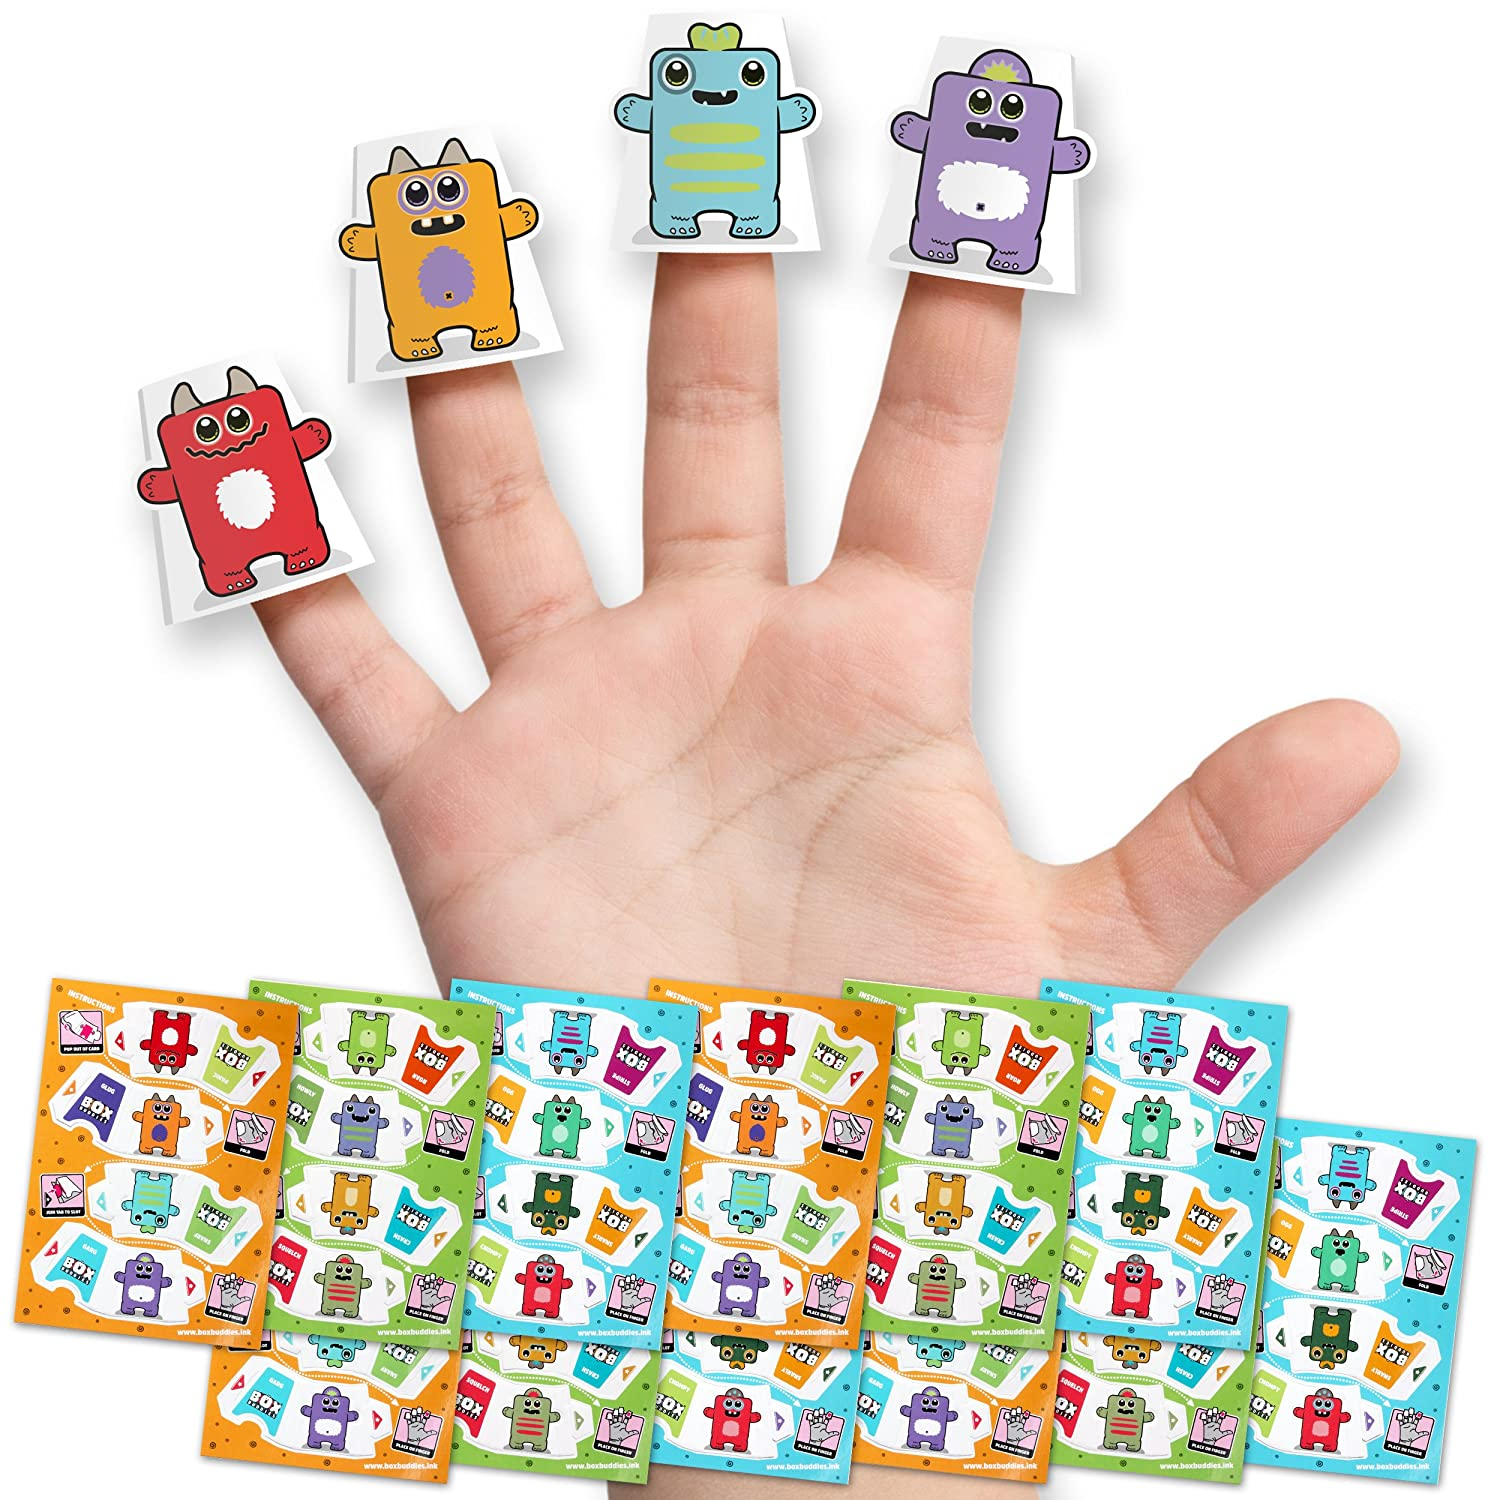 Box Buddies Papercraft Finger Puppets - Monster Party Favors